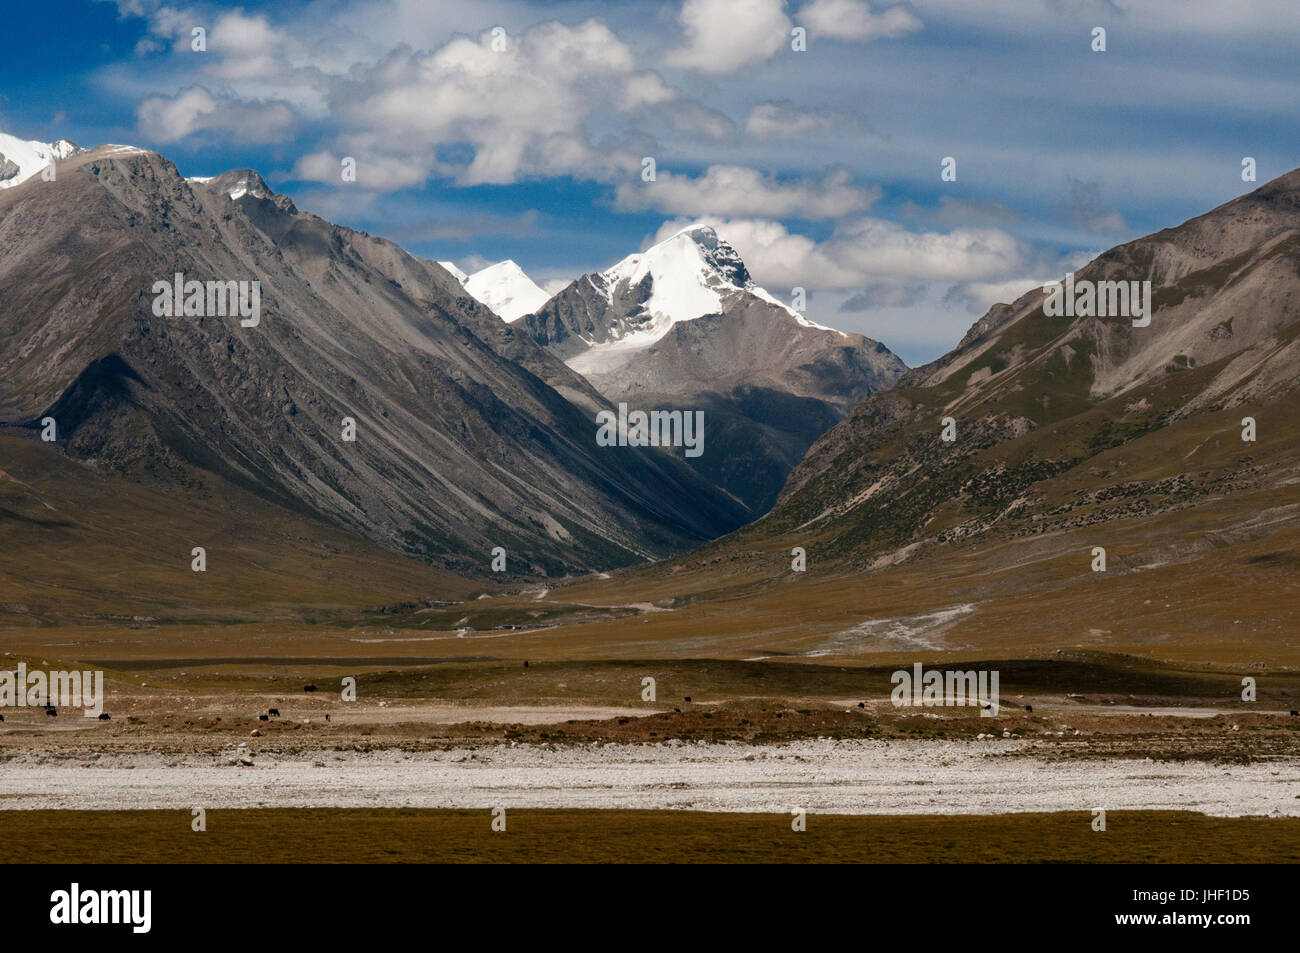 Travel landscape attractions in train Lhasa-Shanghai. Yuzhu Peak: at 6,178 meters, it is the highest point of the Stock Photo